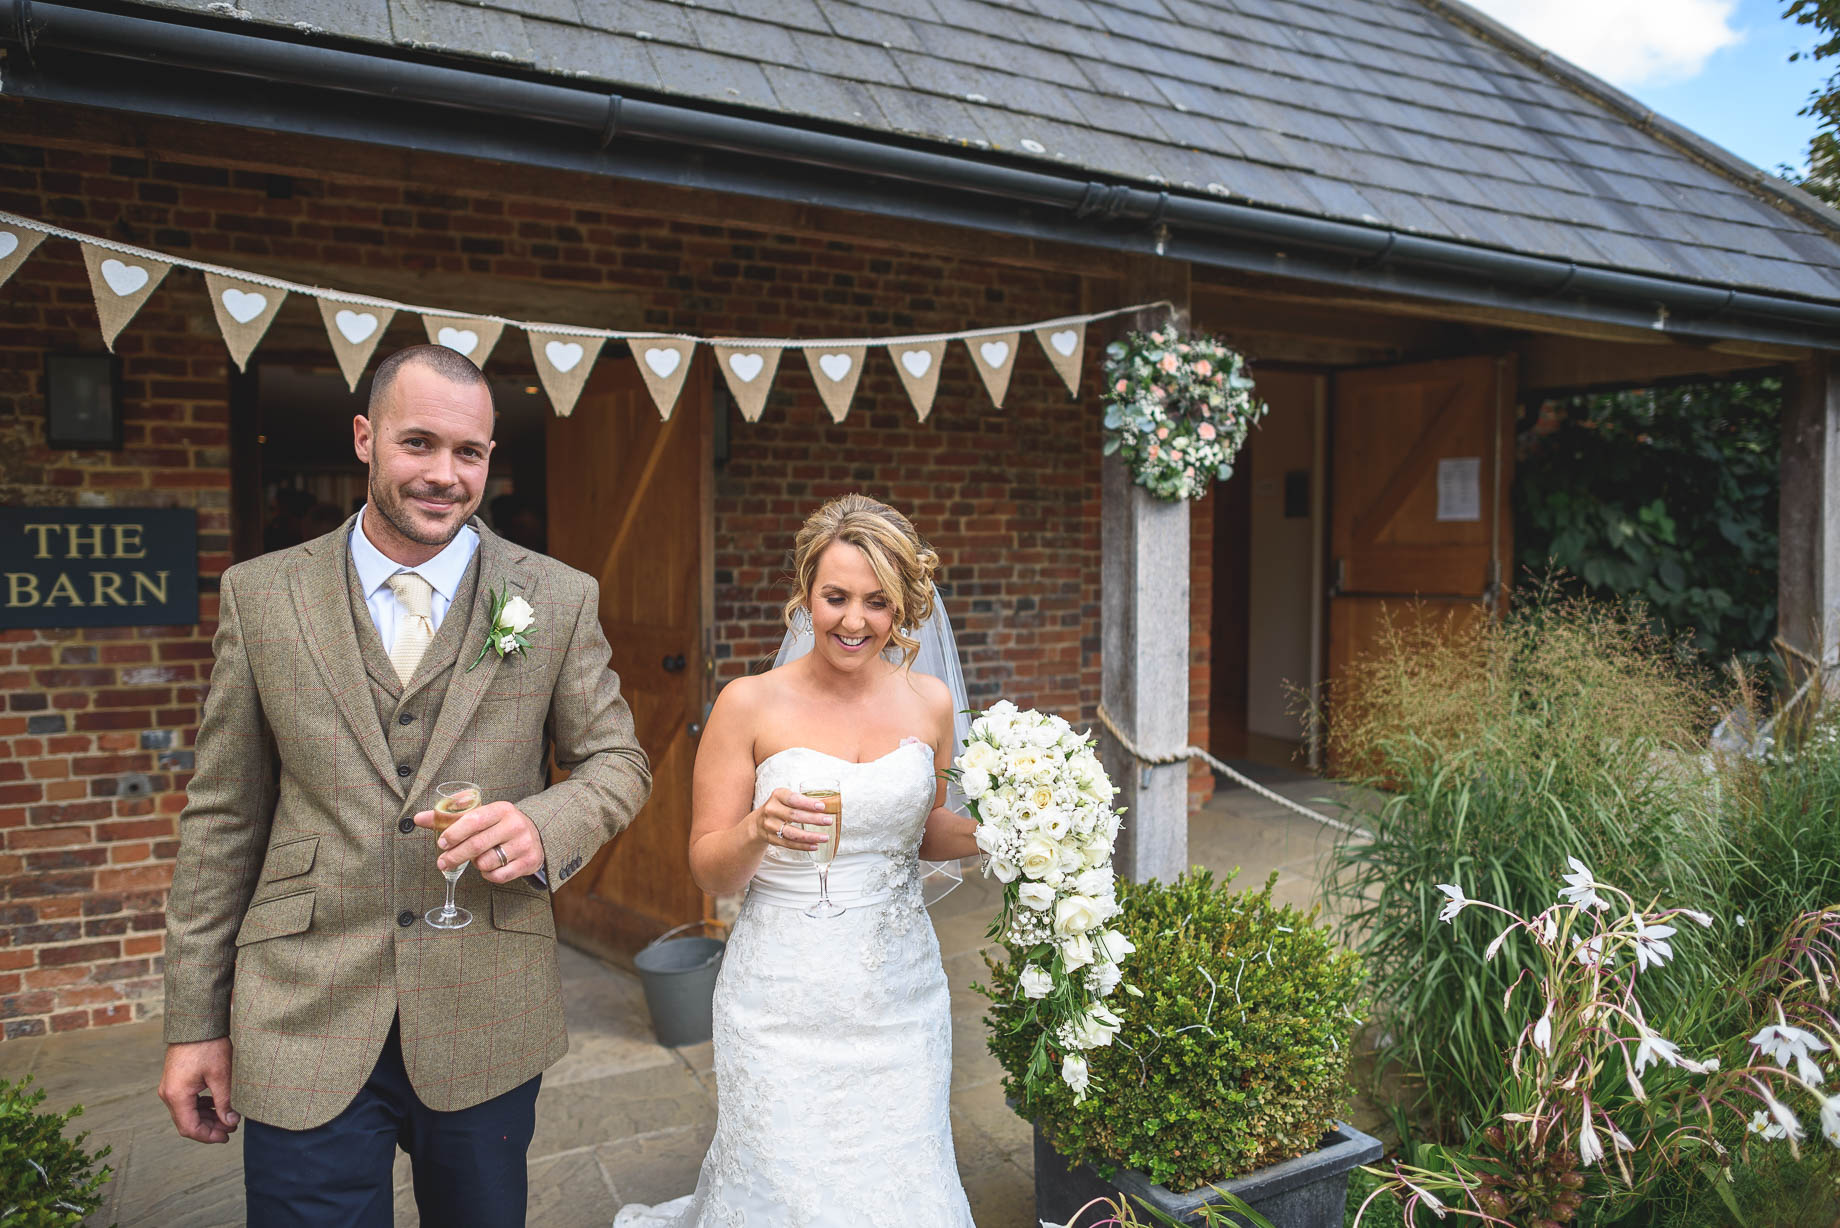 Bury Court Barn wedding photography - Guy Collier - Kate and Russ (78 of 187)